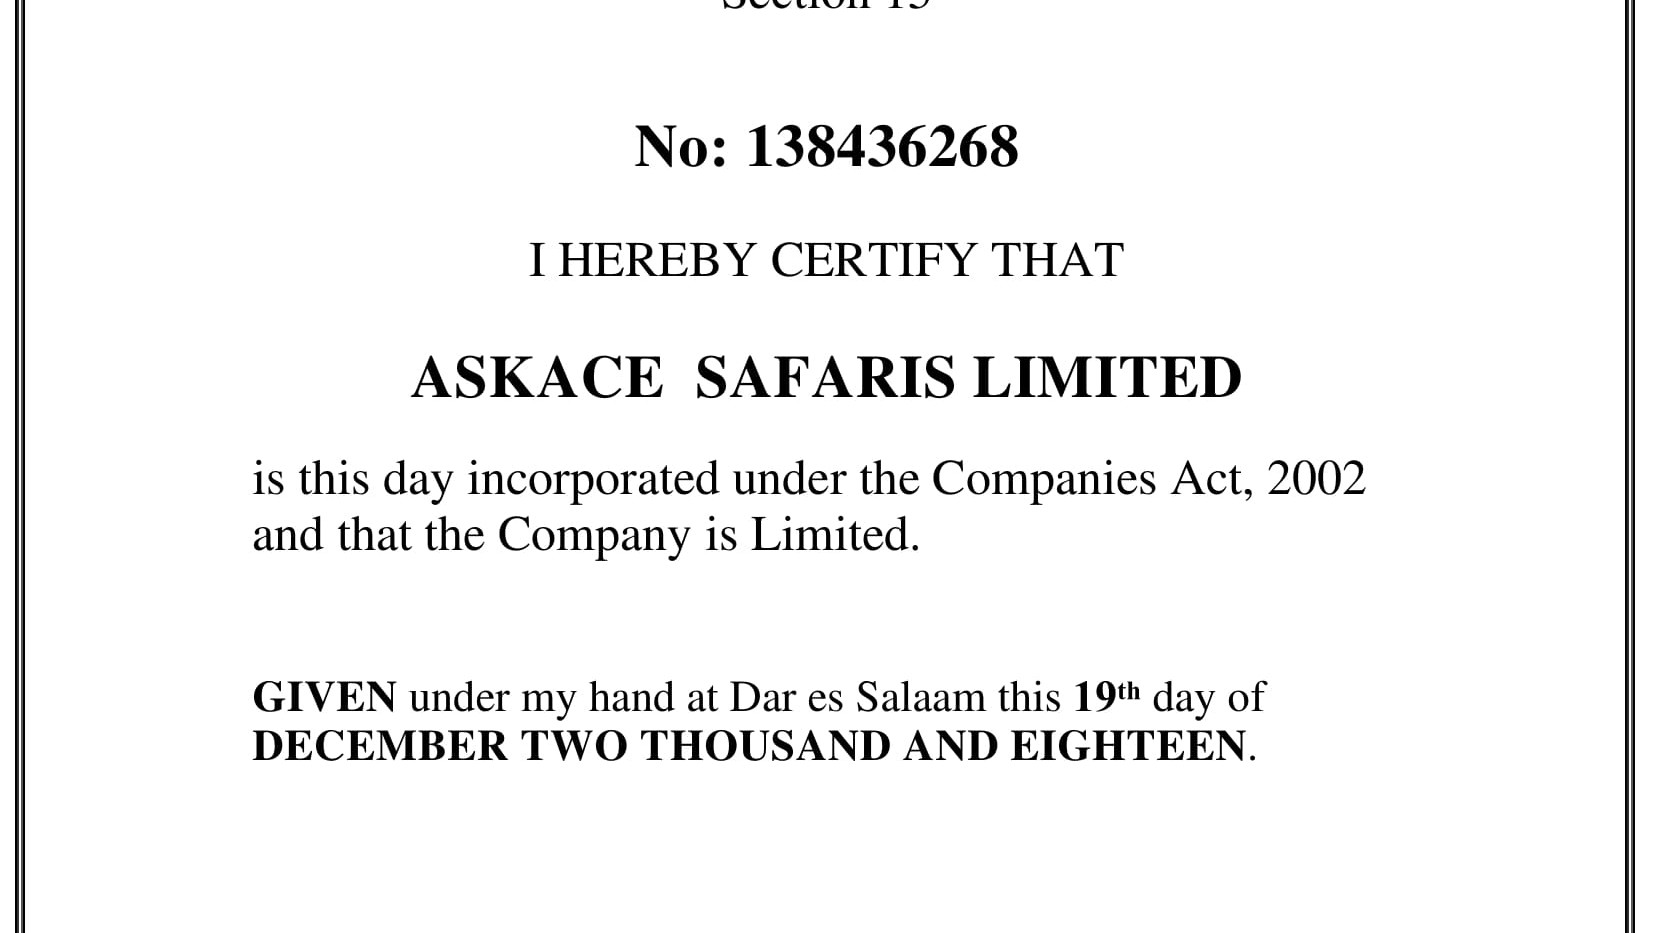 ASKACE SAFARIS LIMITED- CERTIFICATE OF I